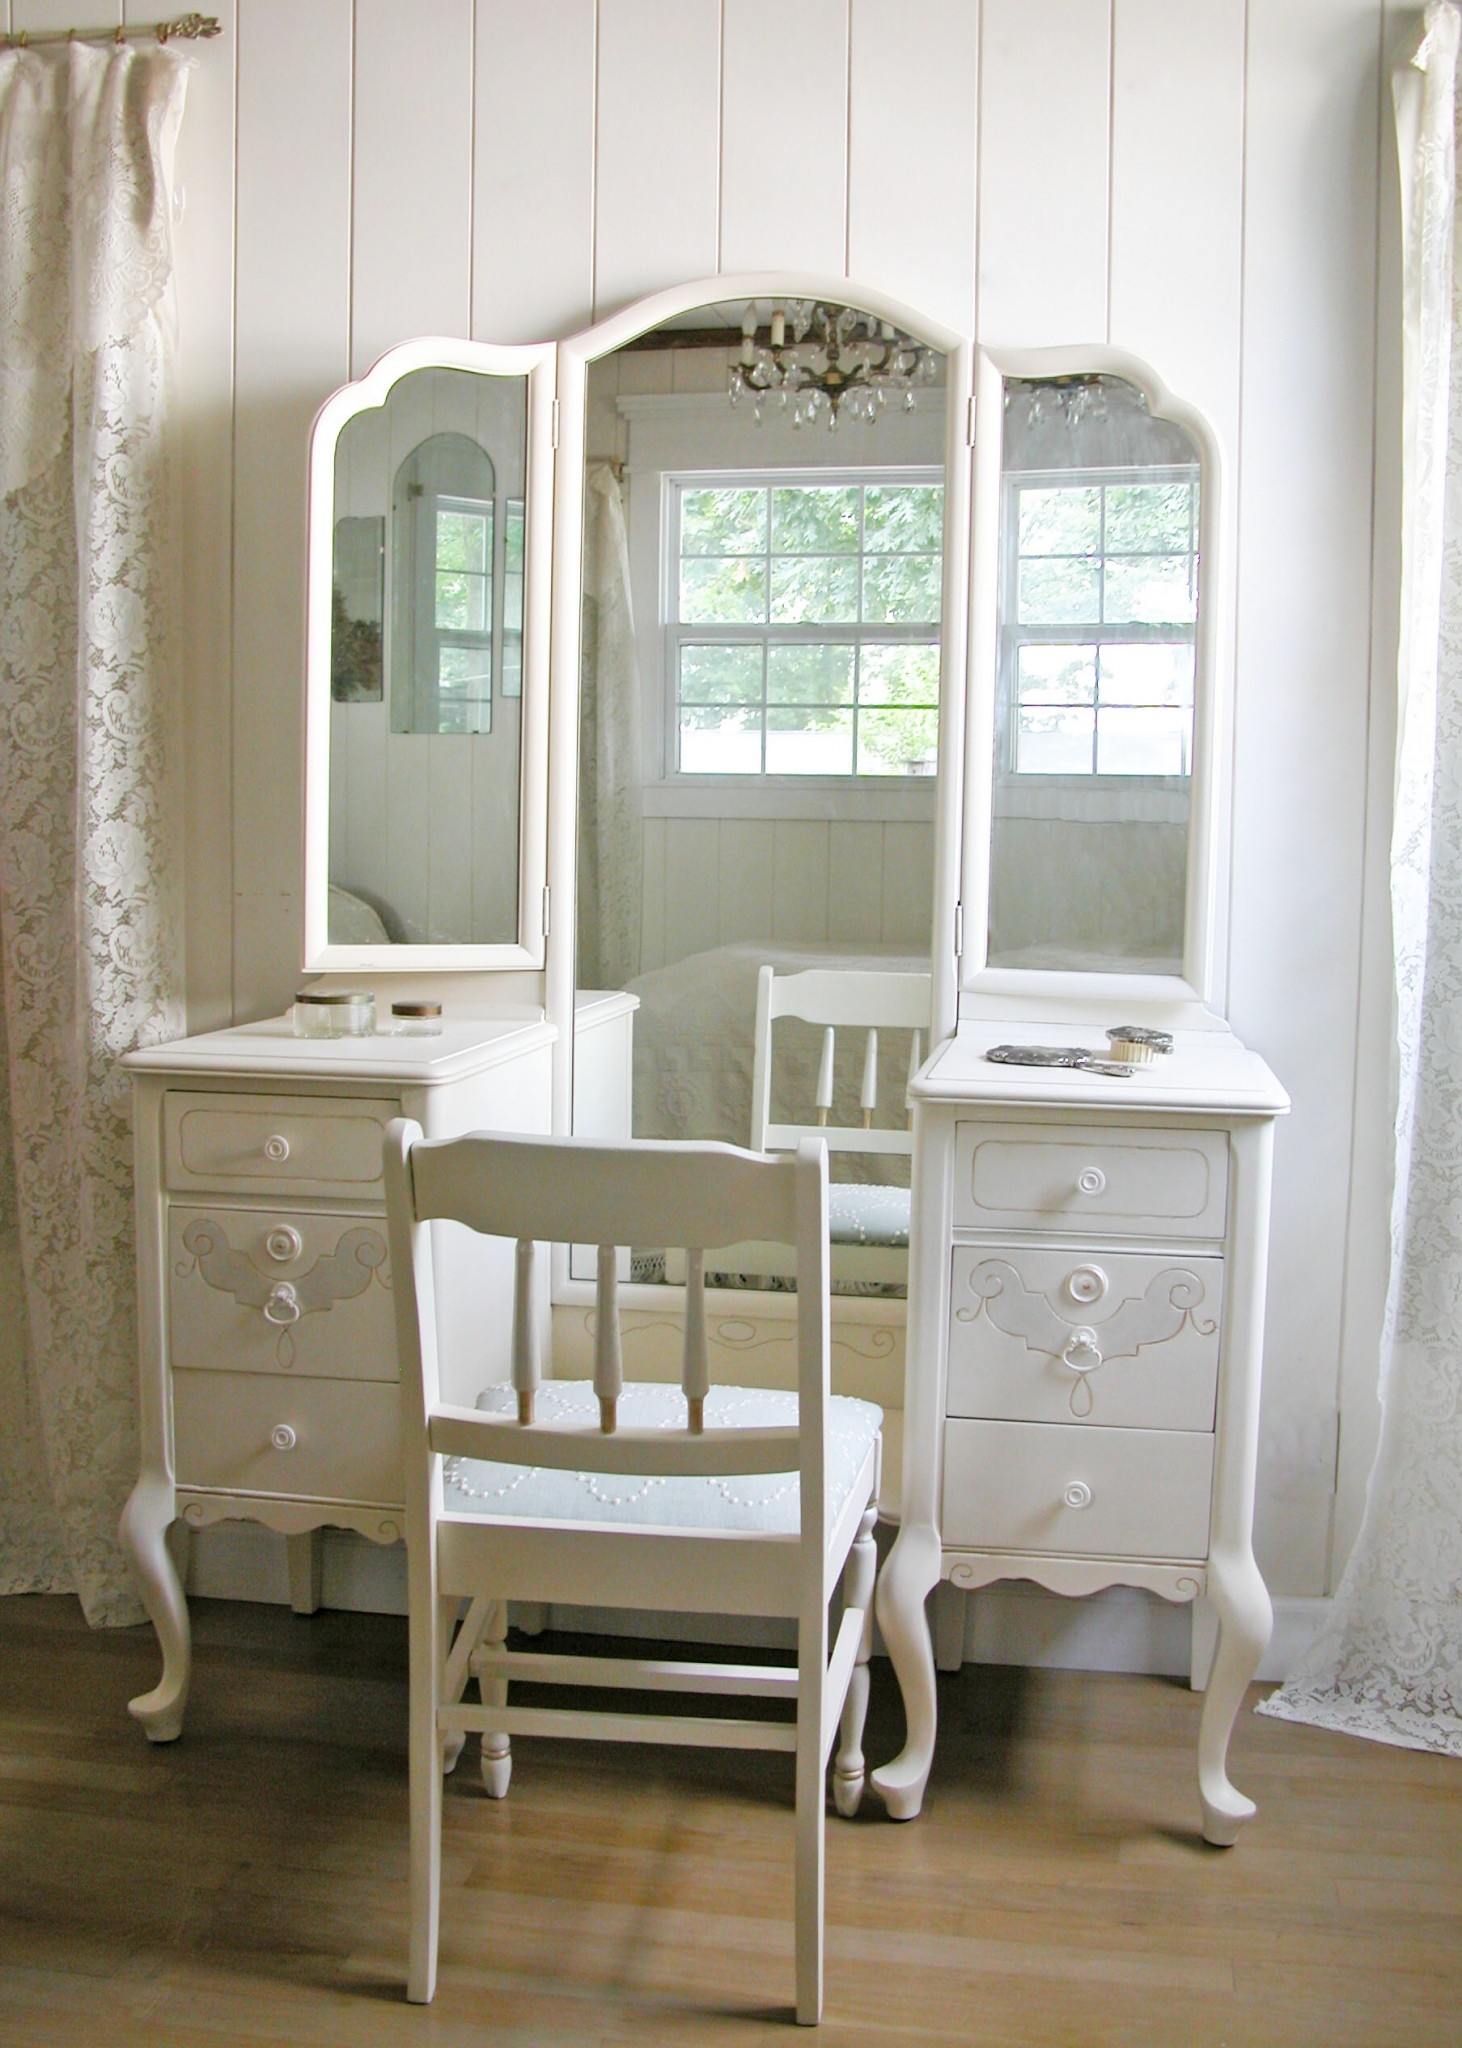 Trifold Dressing Table Refinished as Custom Furniture by Prodigal Pieces | www.prodigalpieces.com